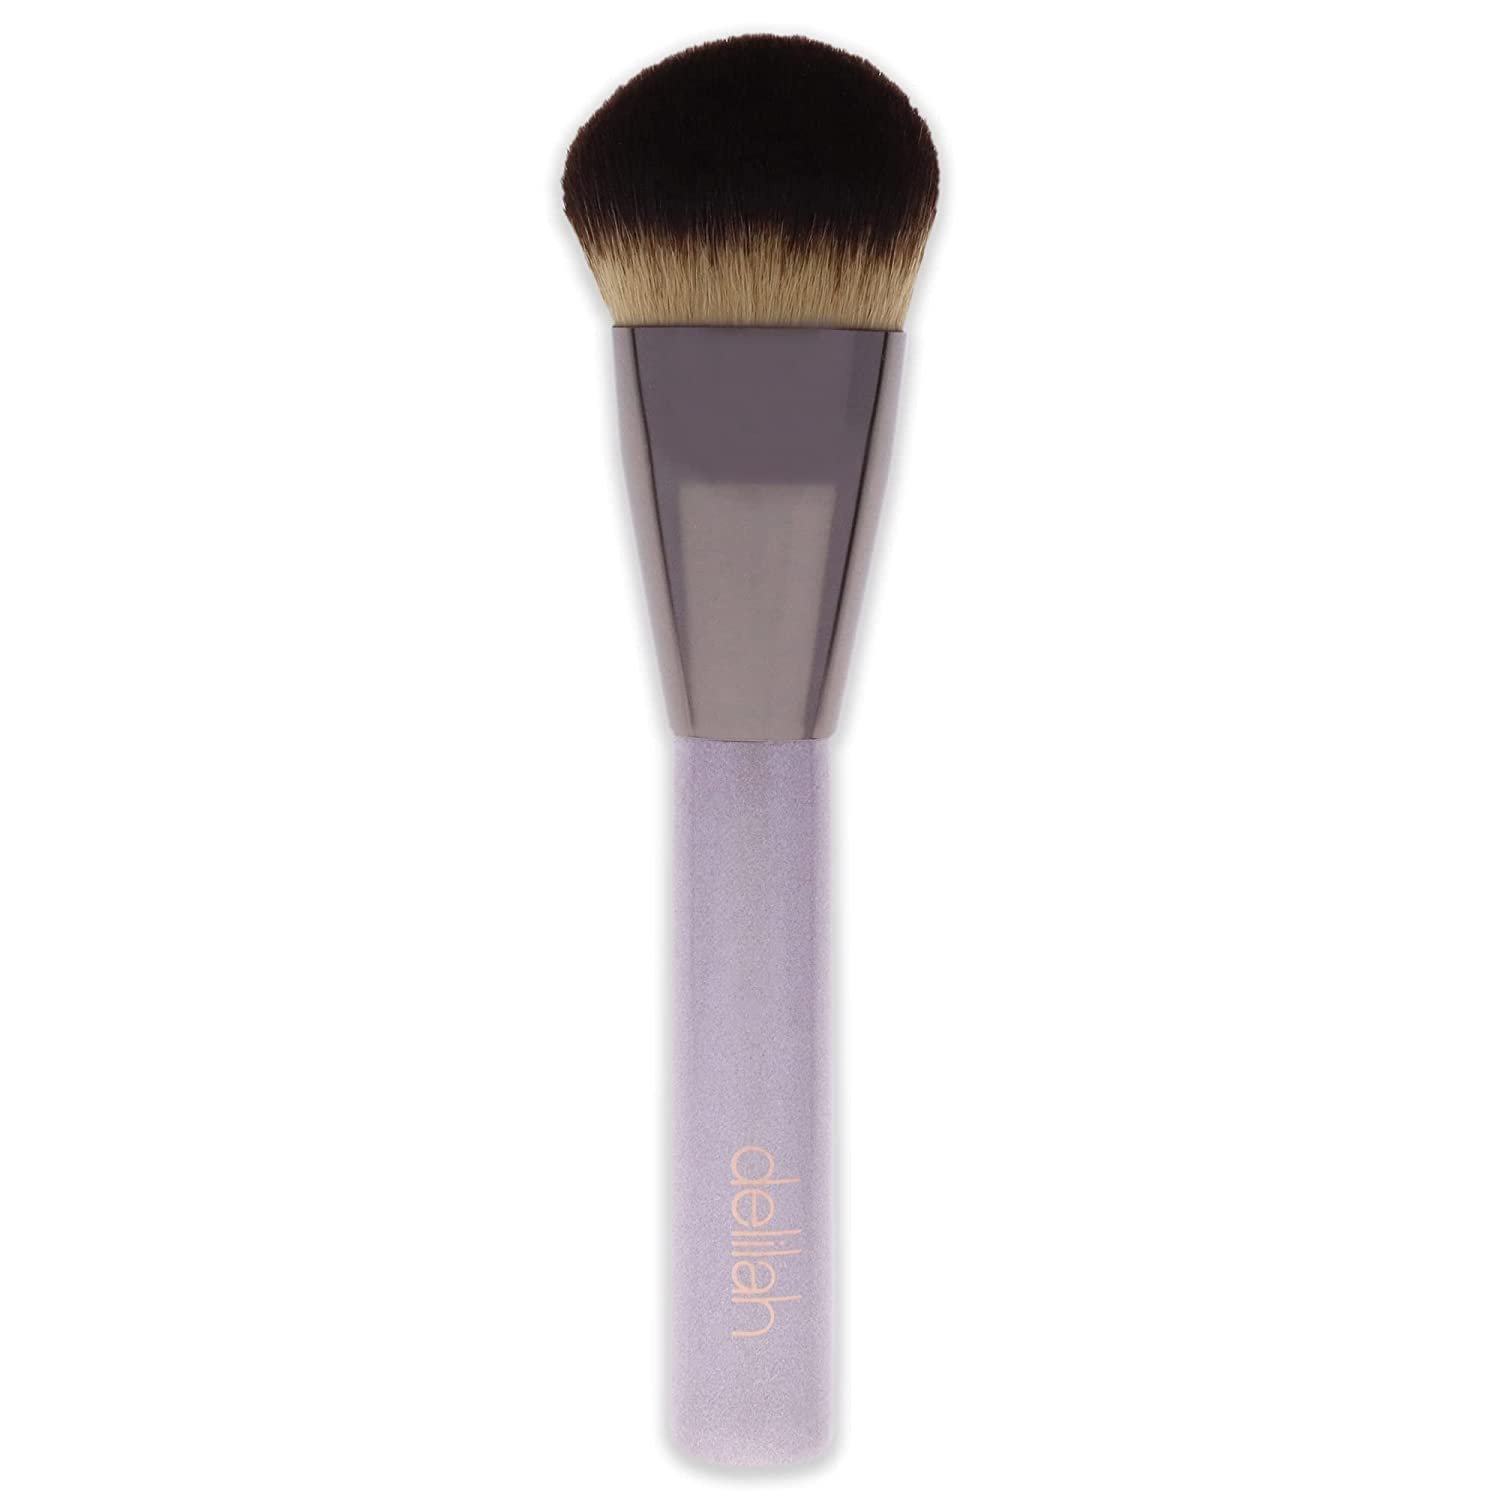 Full Coverage Foundation Brush by Delilah 1 Women for San Antonio Special price Mall Pc -